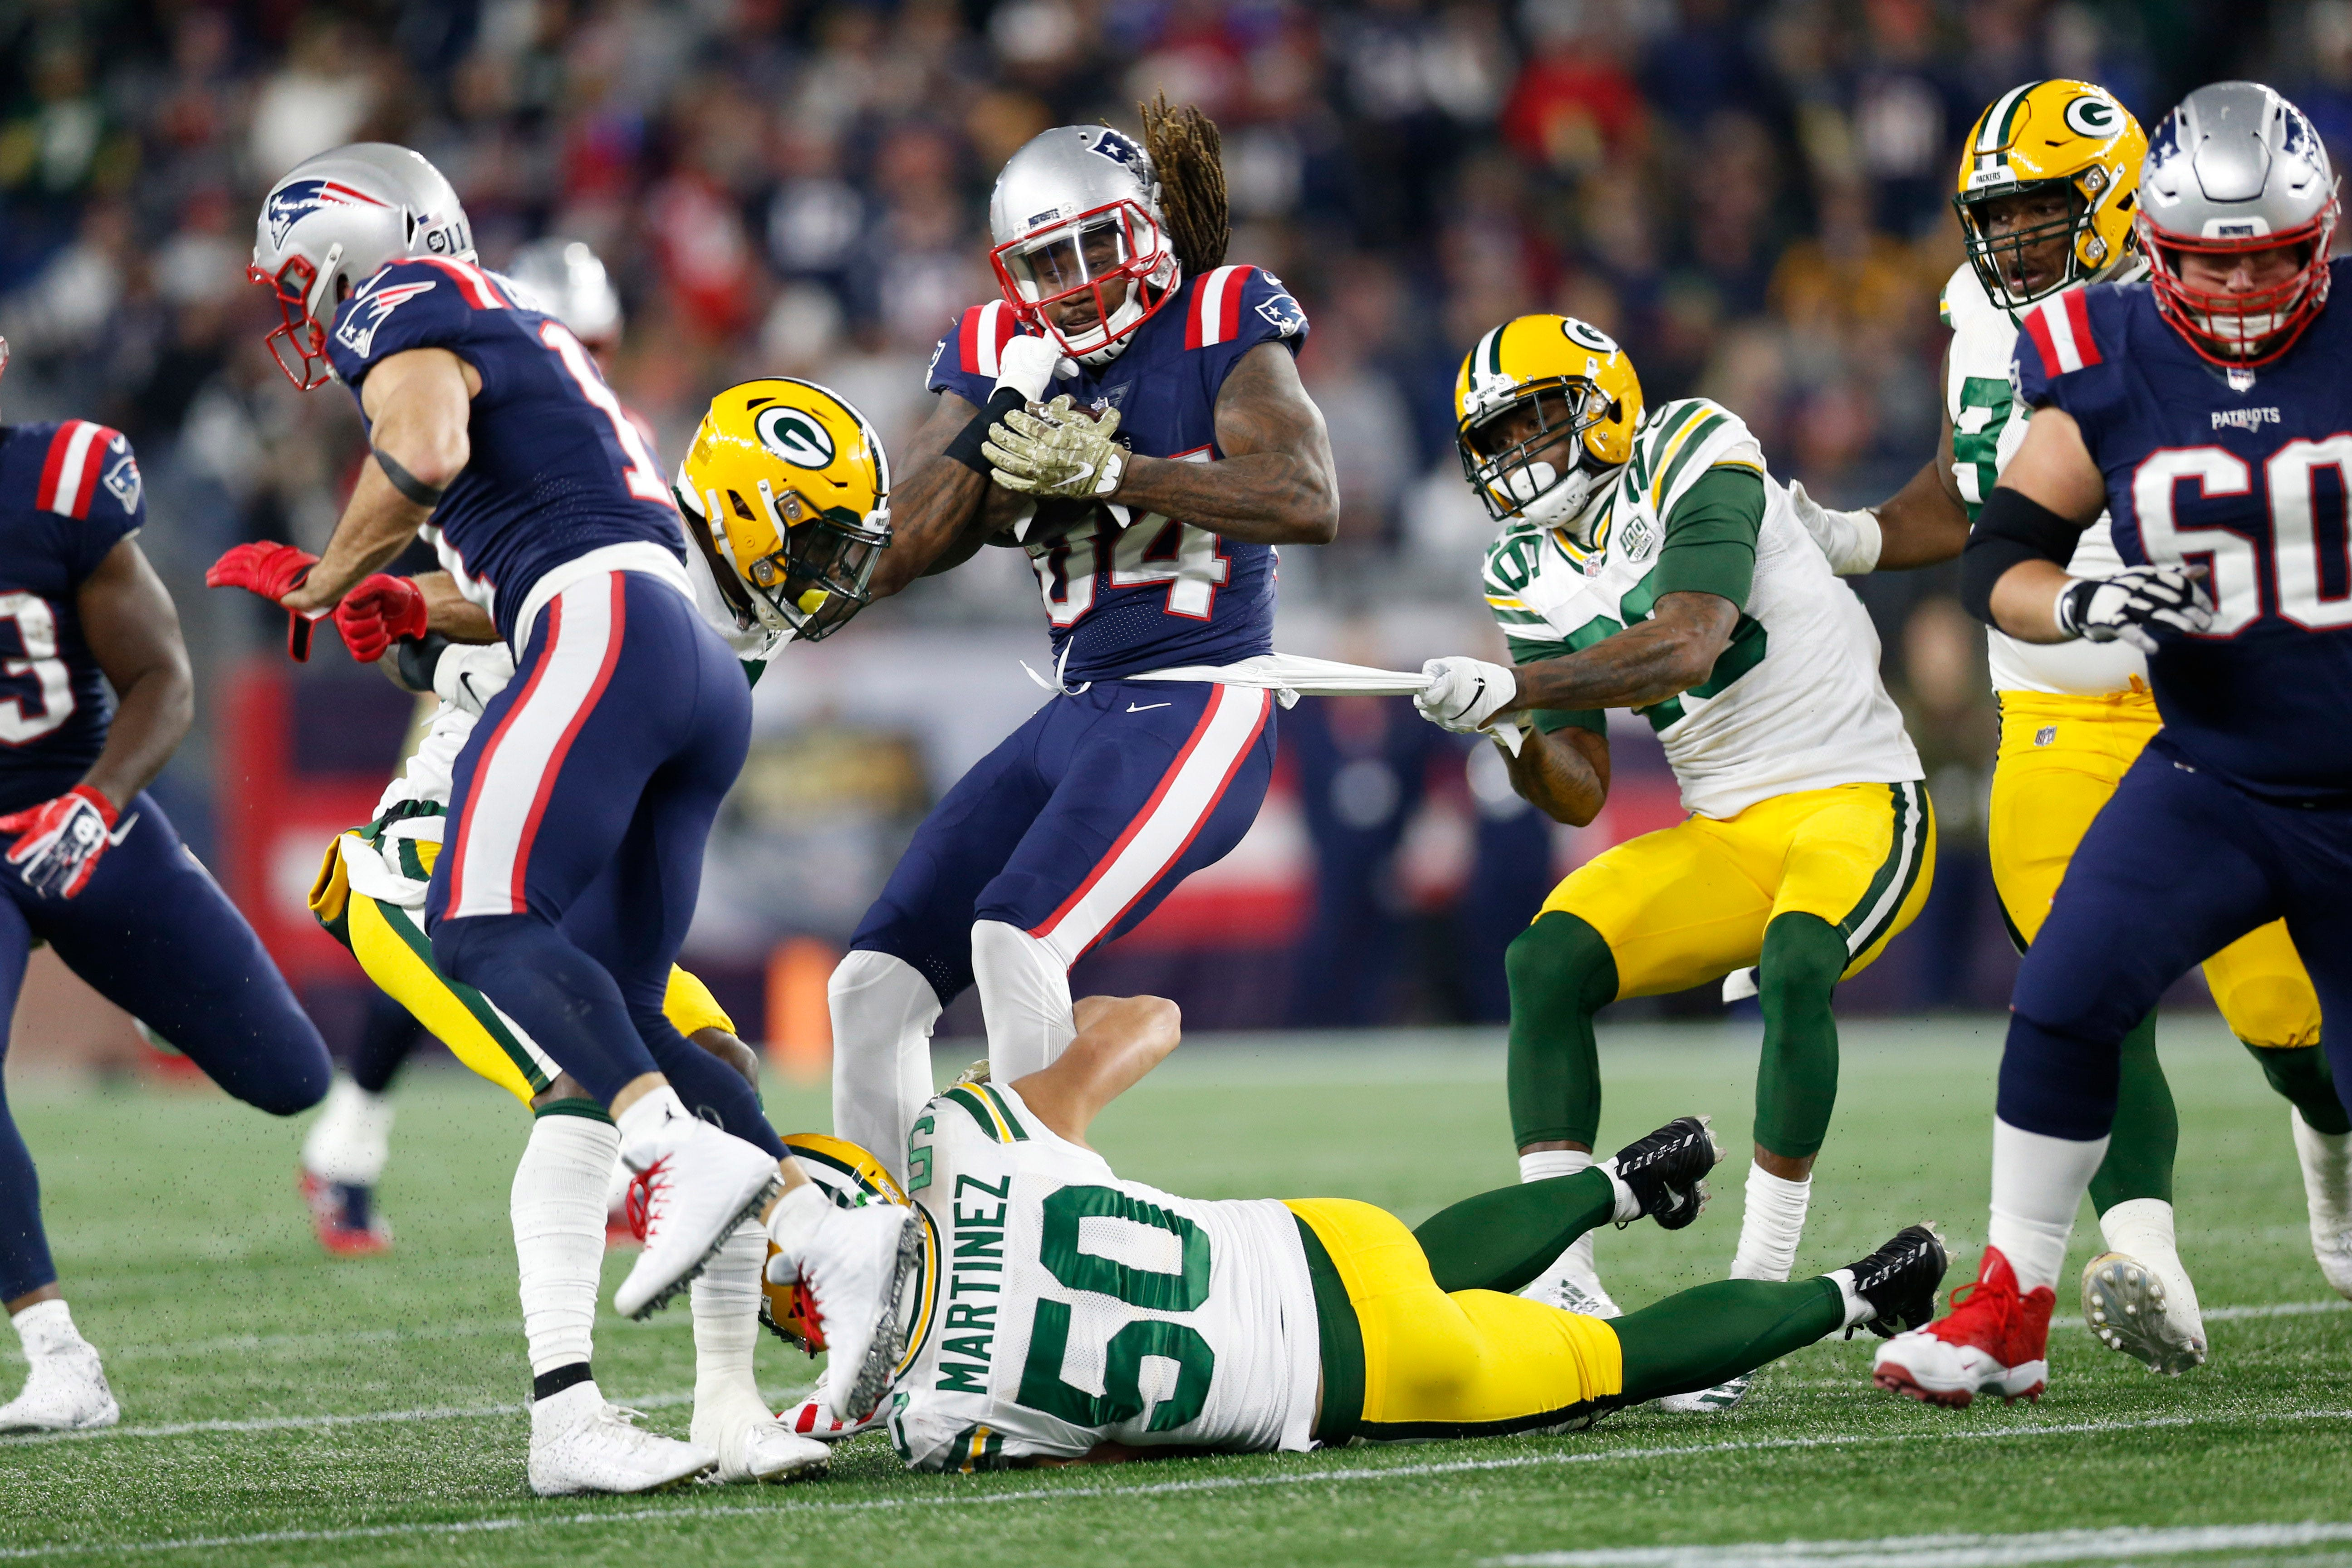 b62249232 Cordarrelle Patterson running lifts New England Patriots to 17-10 ...